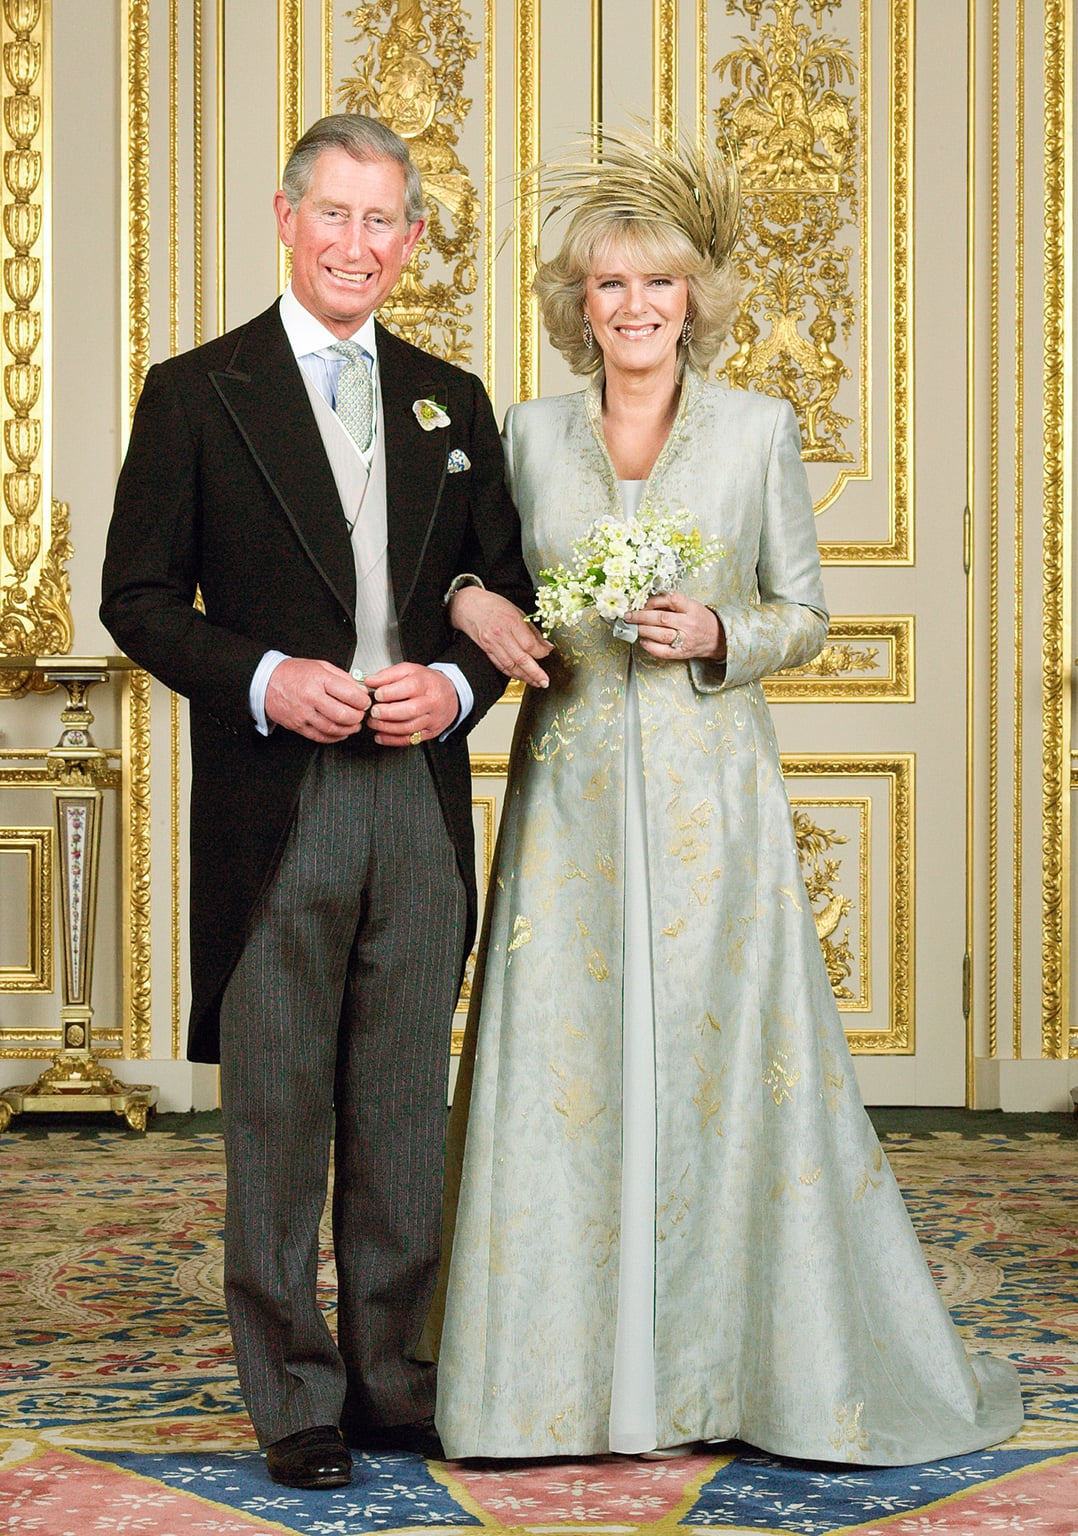 Embroidered silk coat and silk dress designed by Anna Valentine, feather headdress created by Philip Treacy. Worn by The Duchess of Cornwall for the blessing after her marriage to HRH The Prince of Wales, 2005.